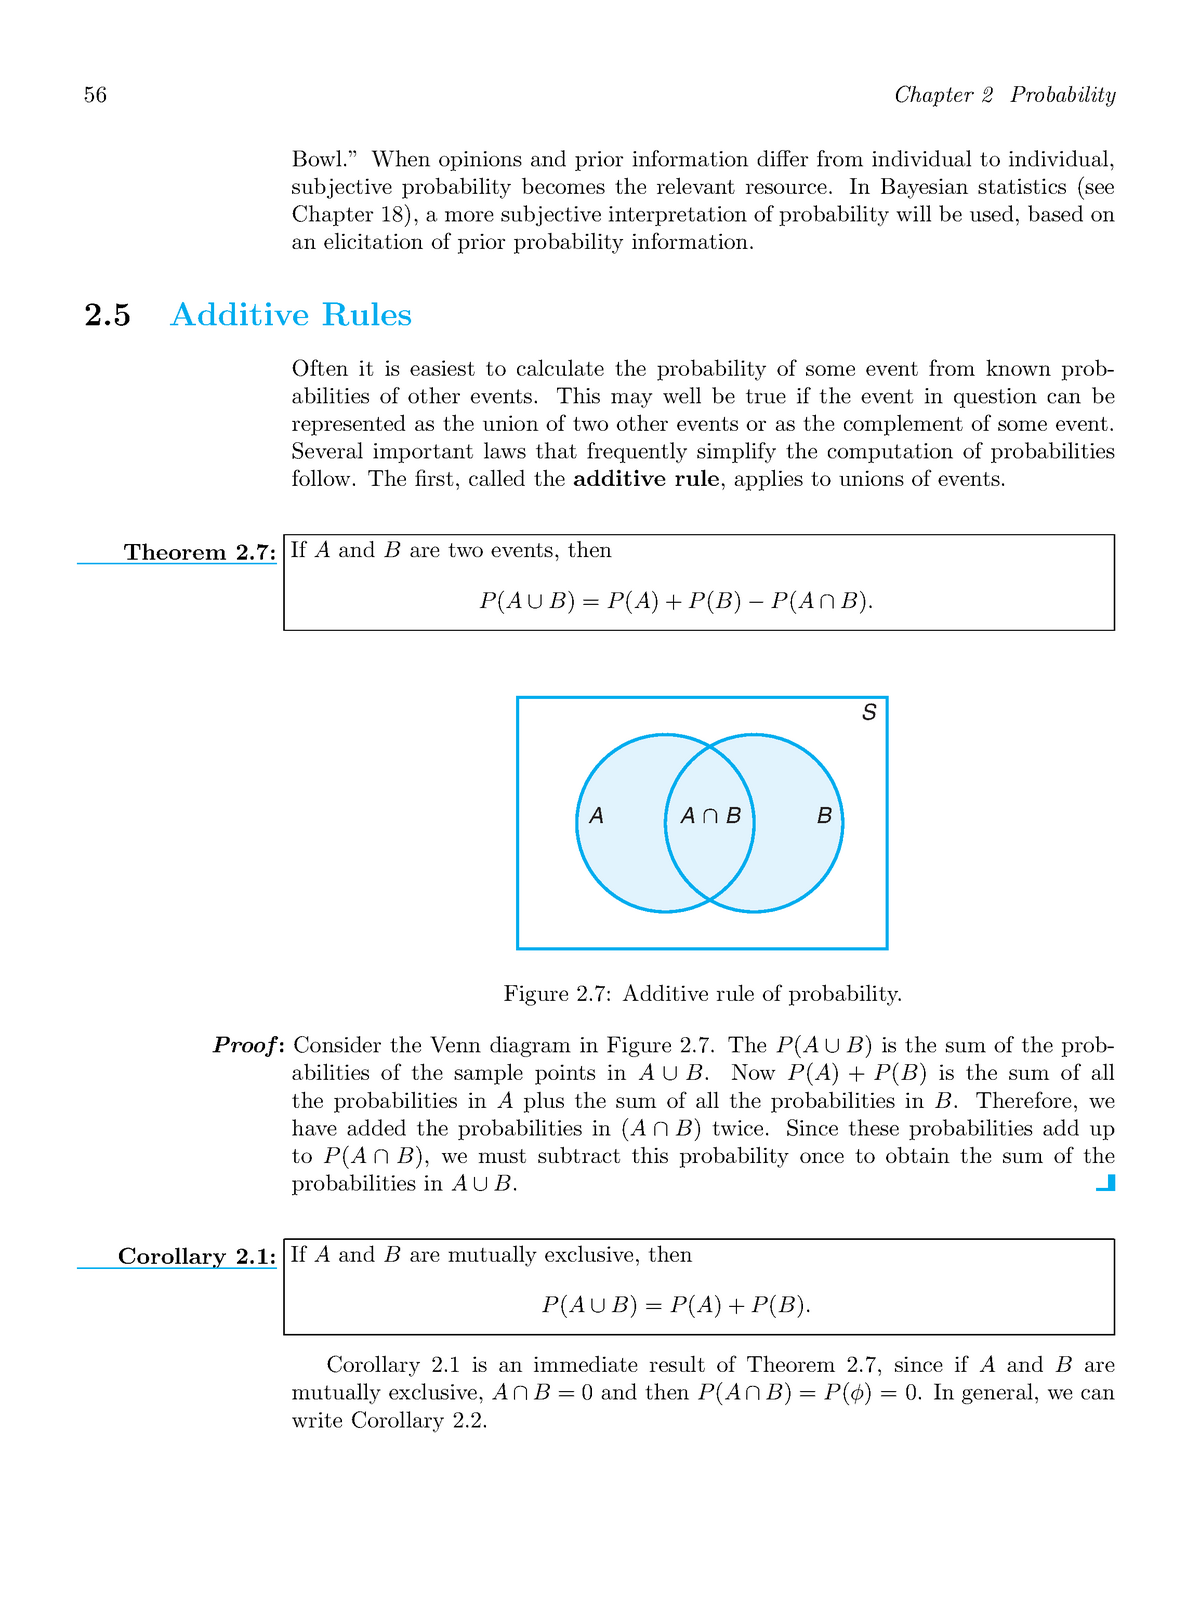 Probability+and+bayes+problem+by+walpol+and+mayer - PRP01